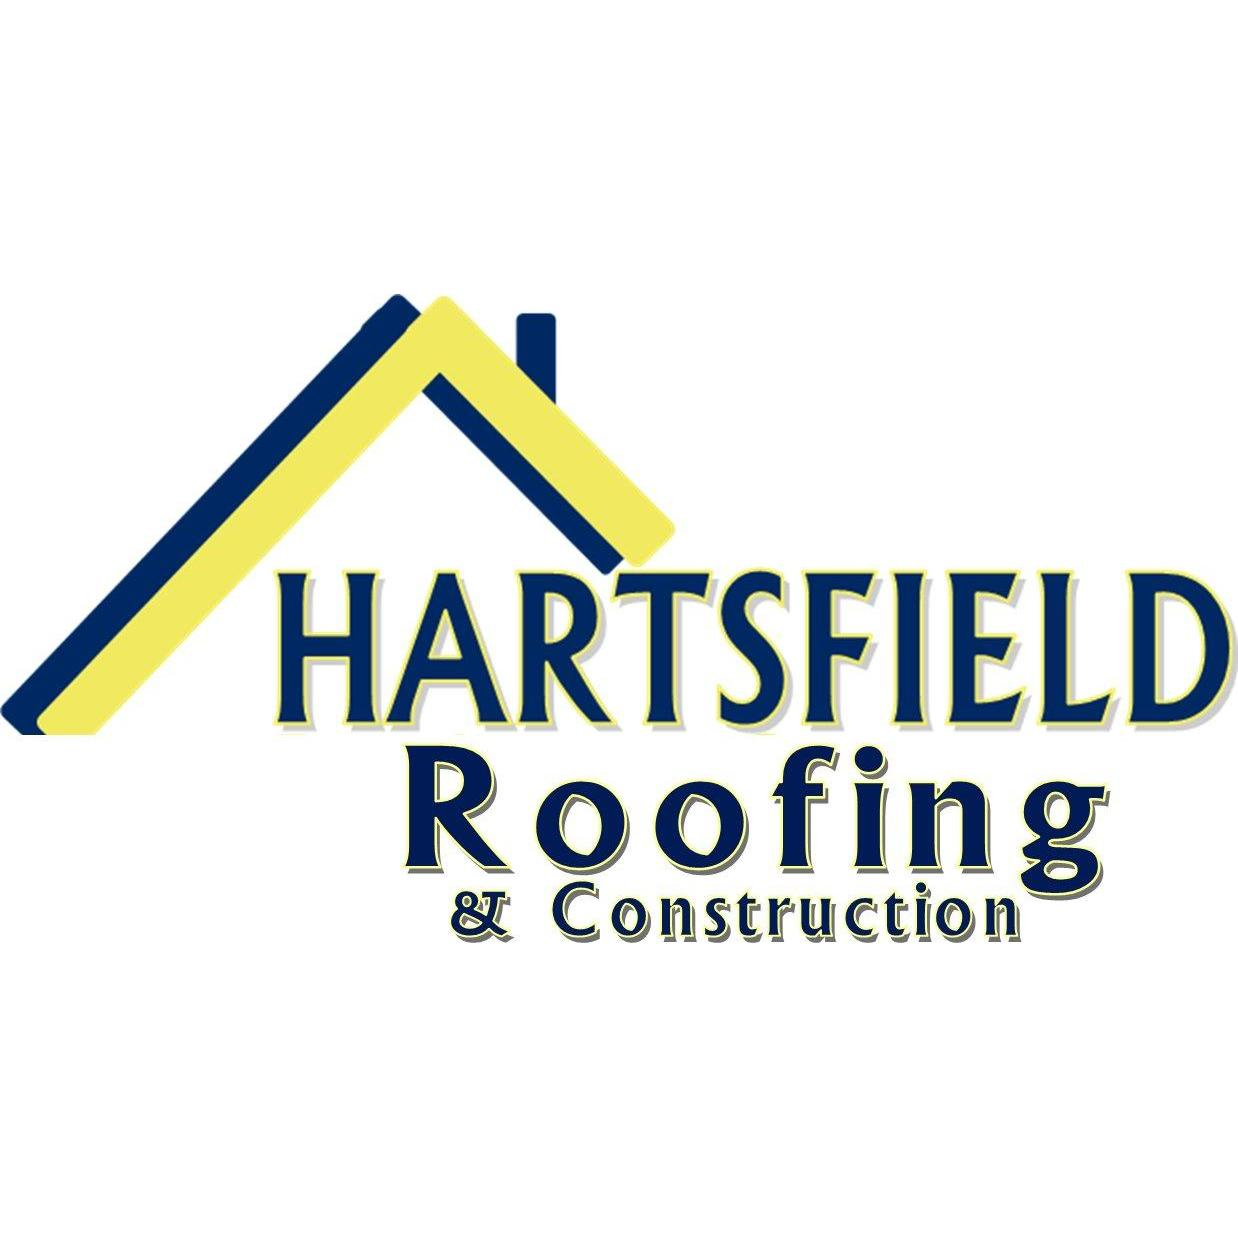 Hartsfield Roofing & Construction image 0